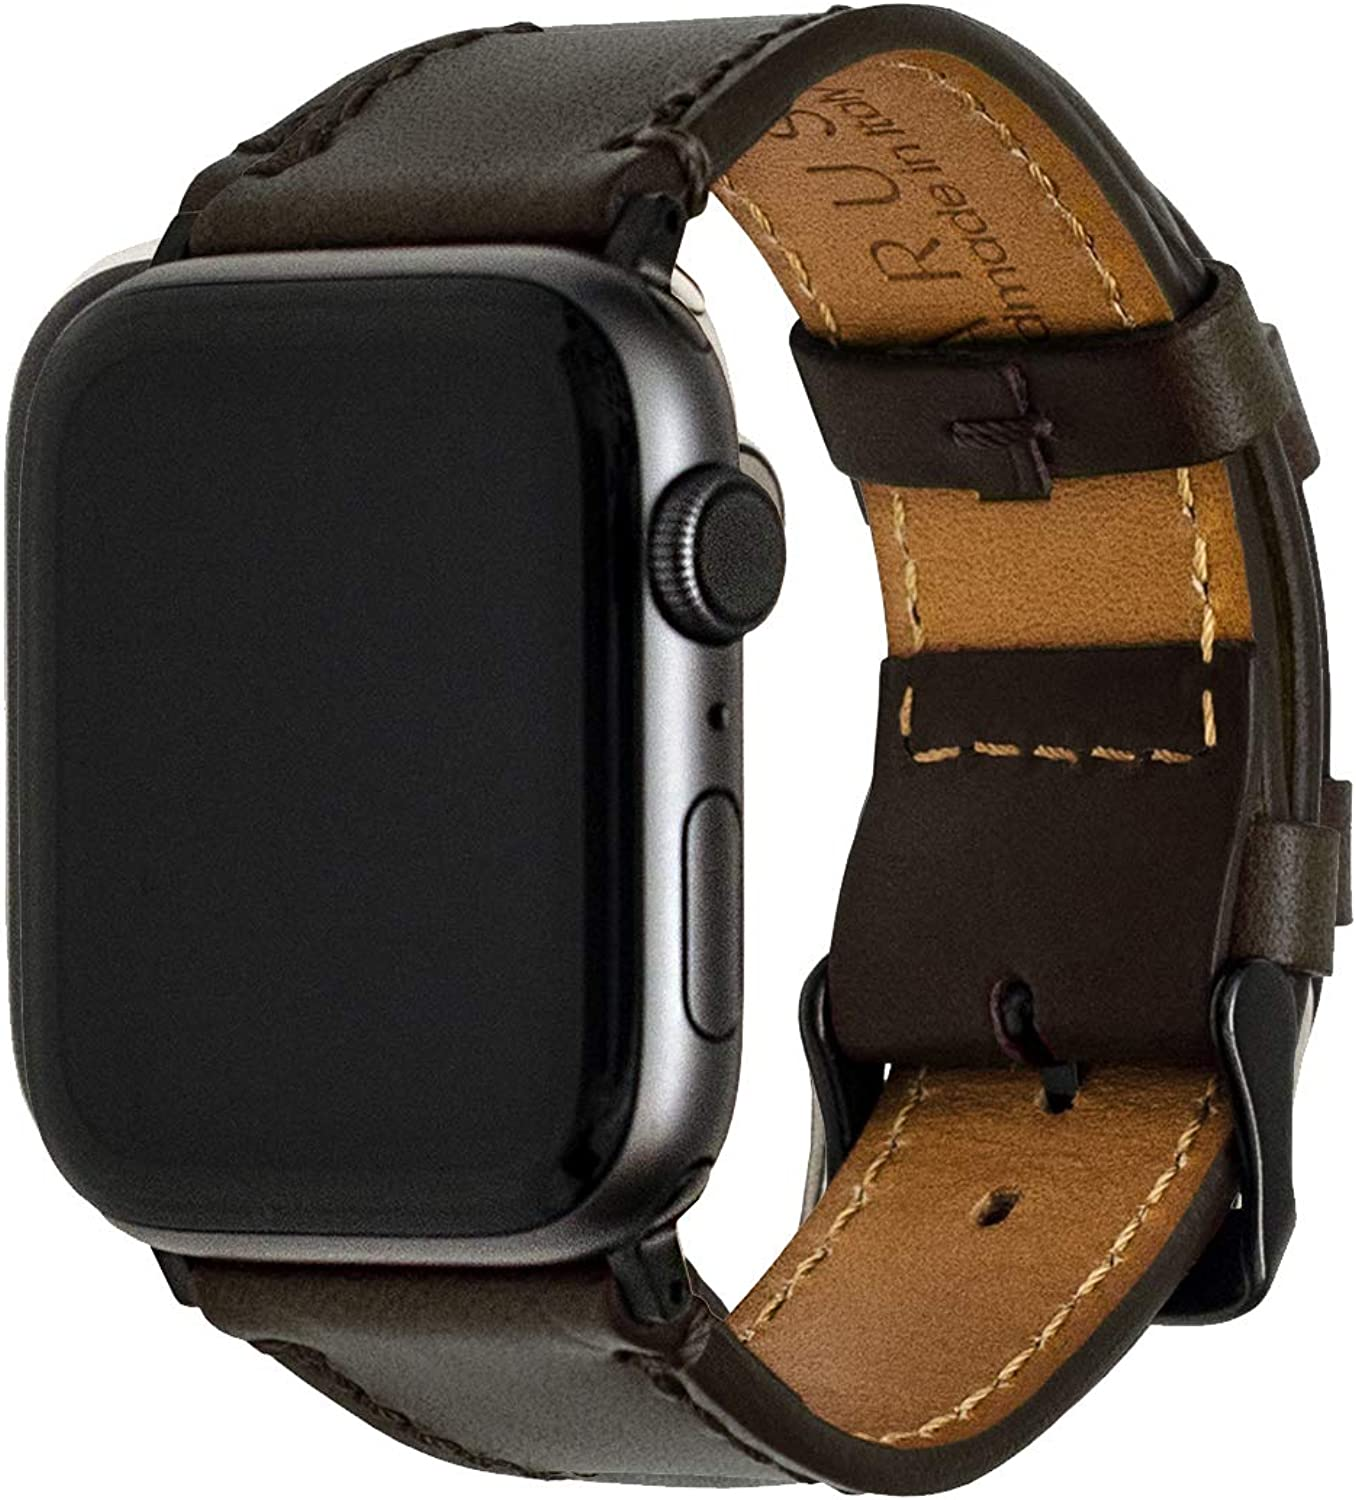 Maruse Leather Watch Band with Italian Vachetta Leather & Classic Buckle, Compatible with Apple Watch, Durable Chemical-Free Sustainable Leather Handmade in Italy